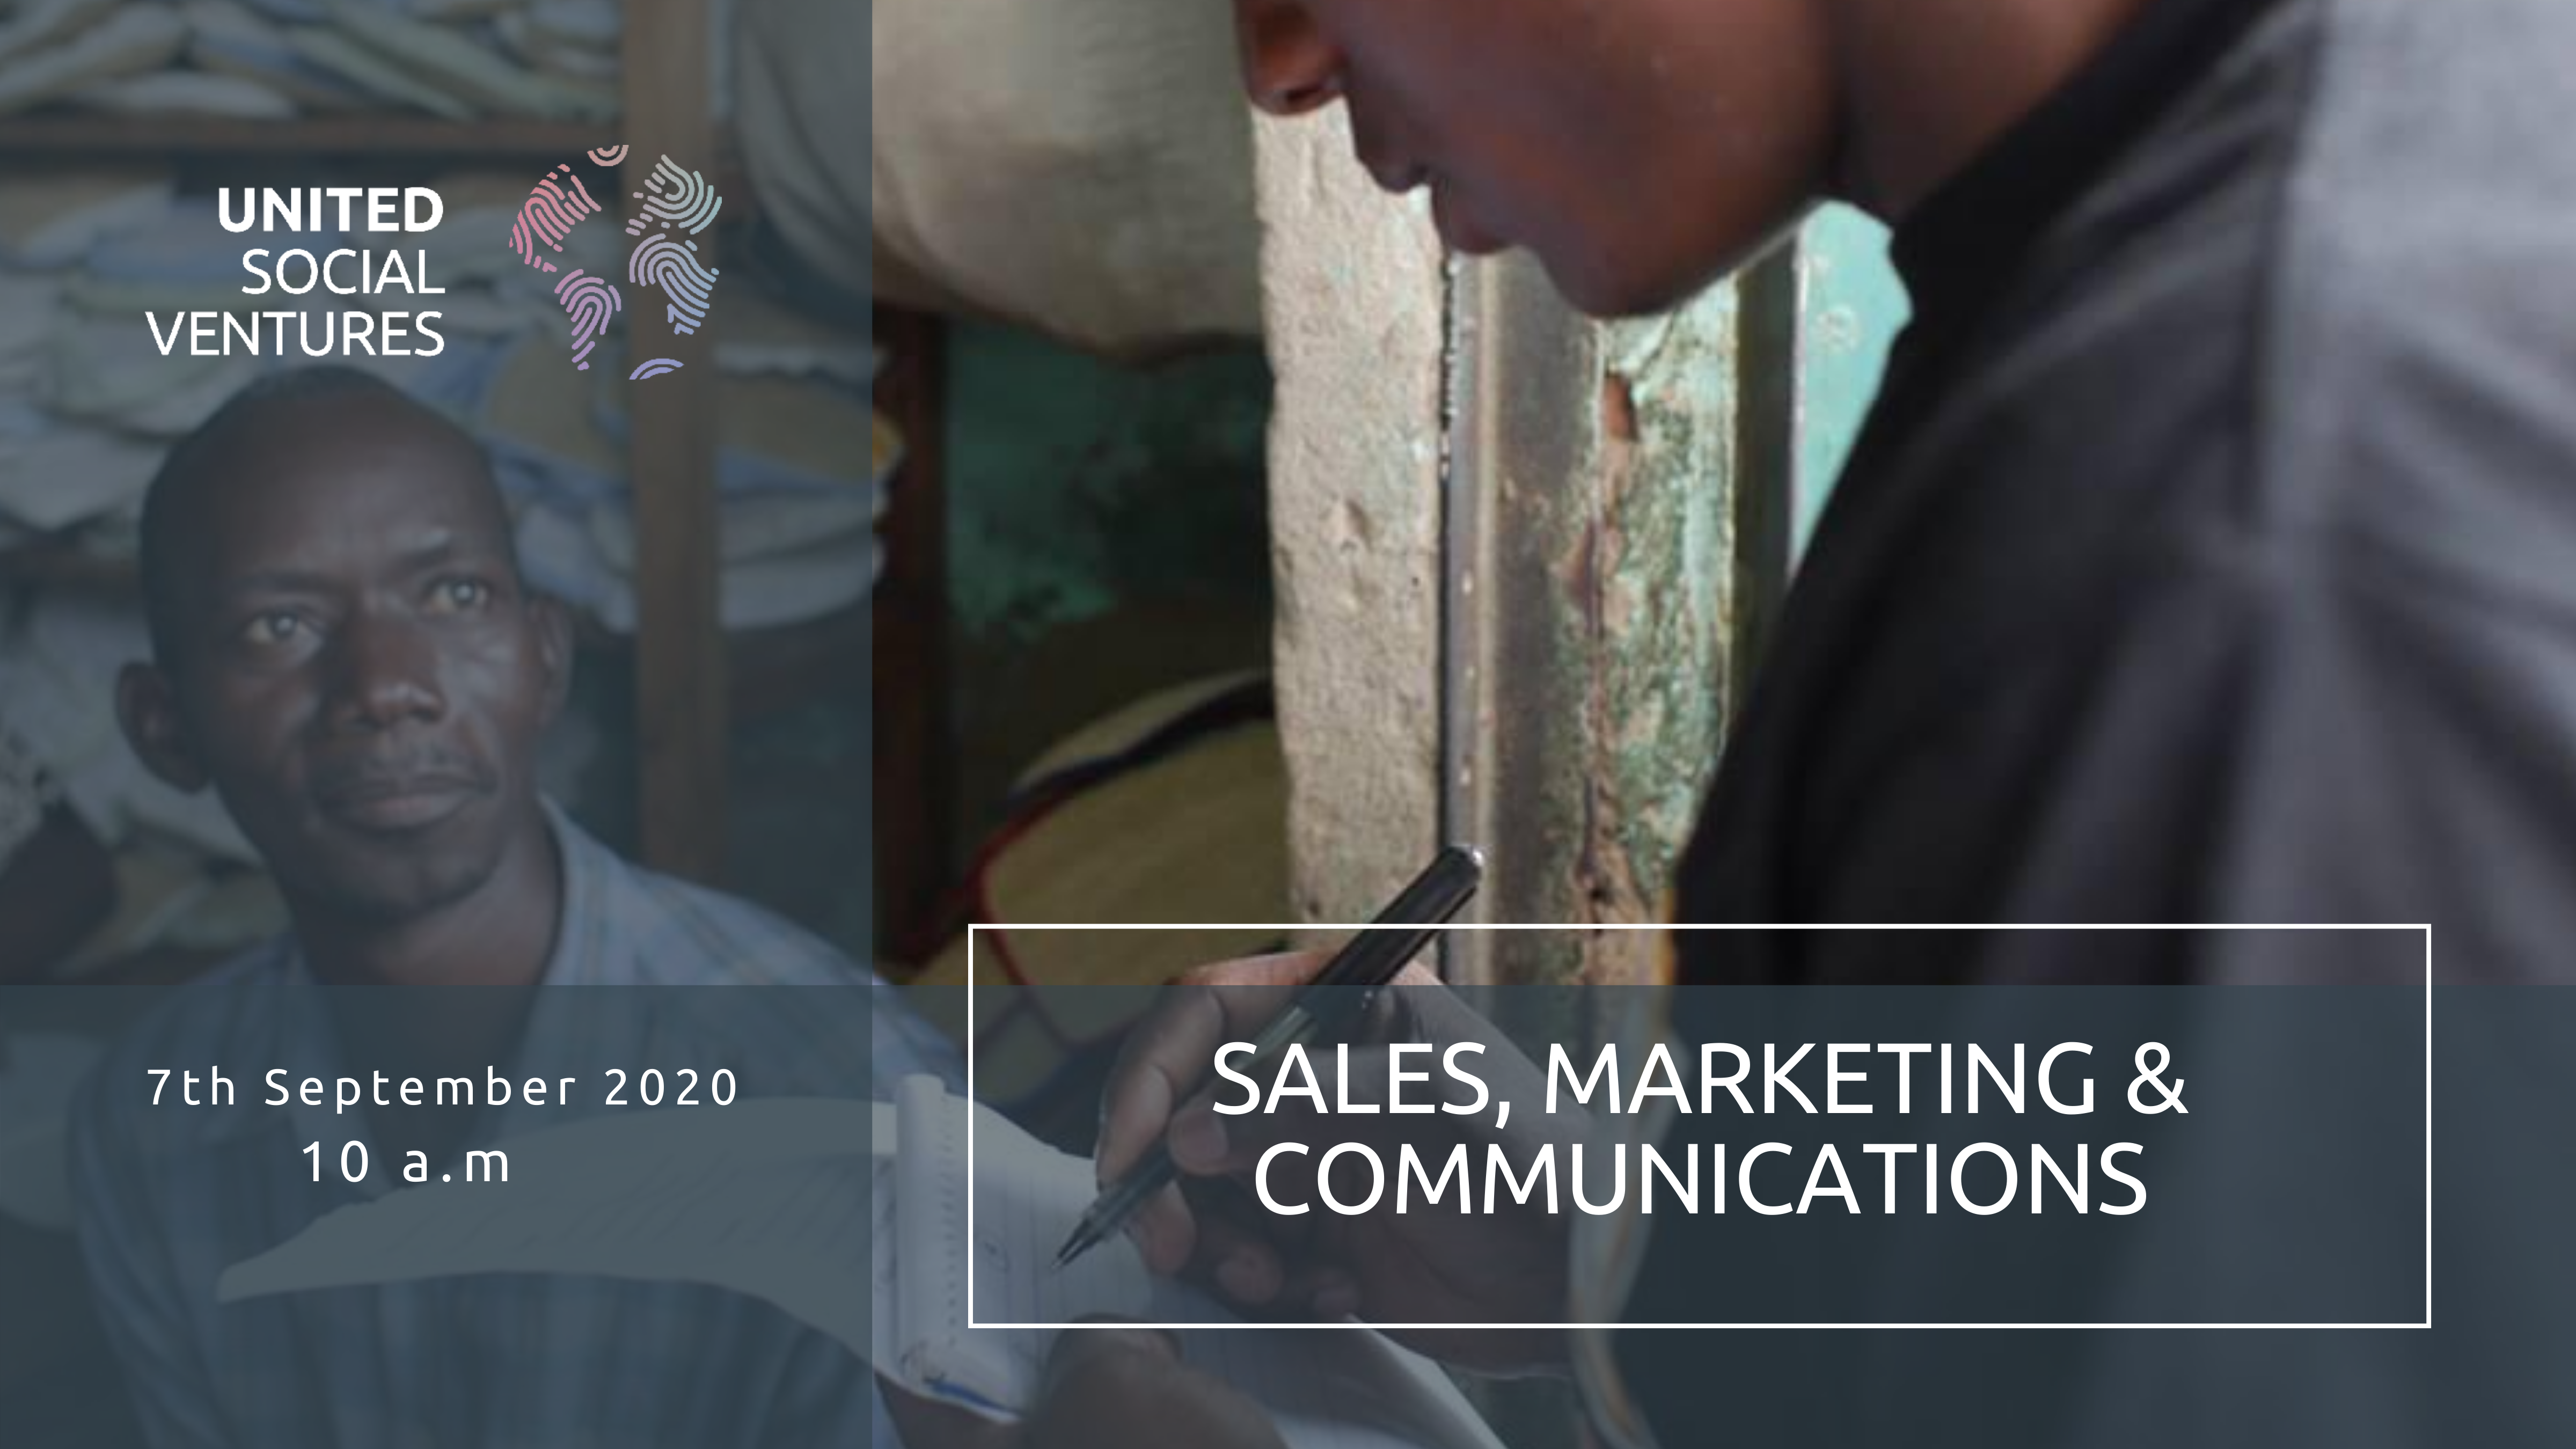 Sales, marketing & communcations